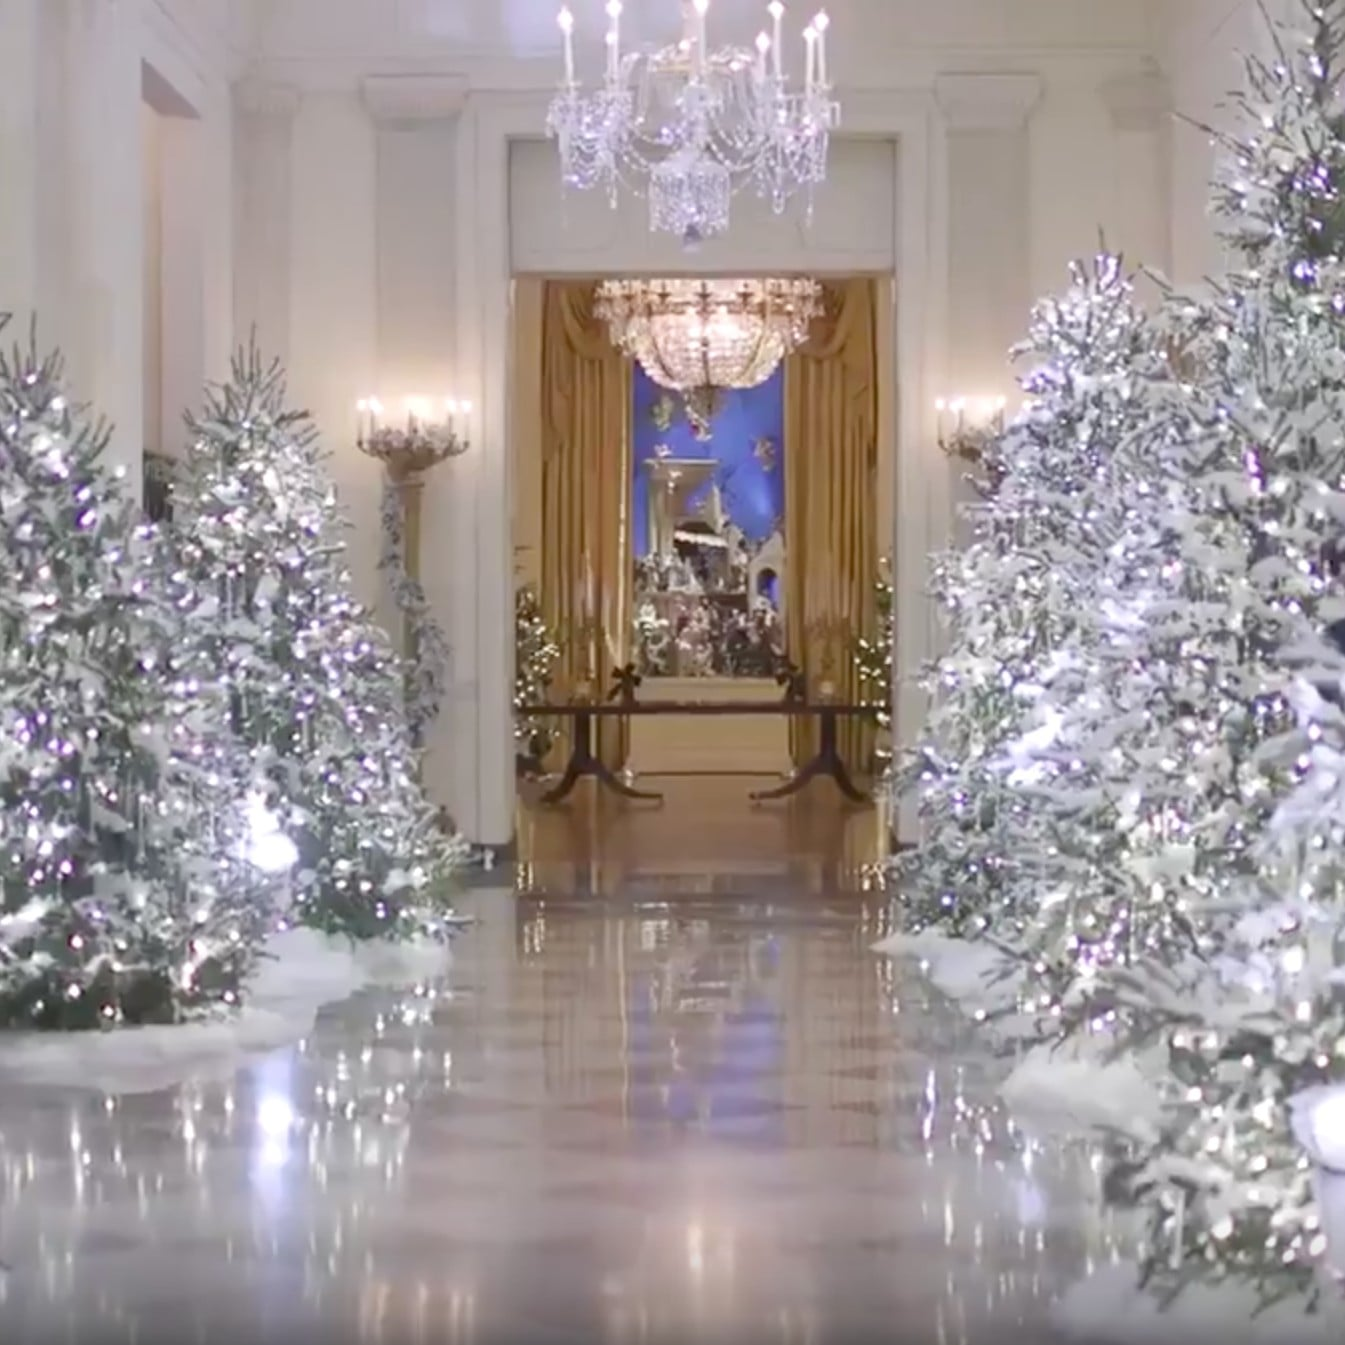 white house holiday decorations 2017 popsugar family - The White House Christmas Decorations 2017